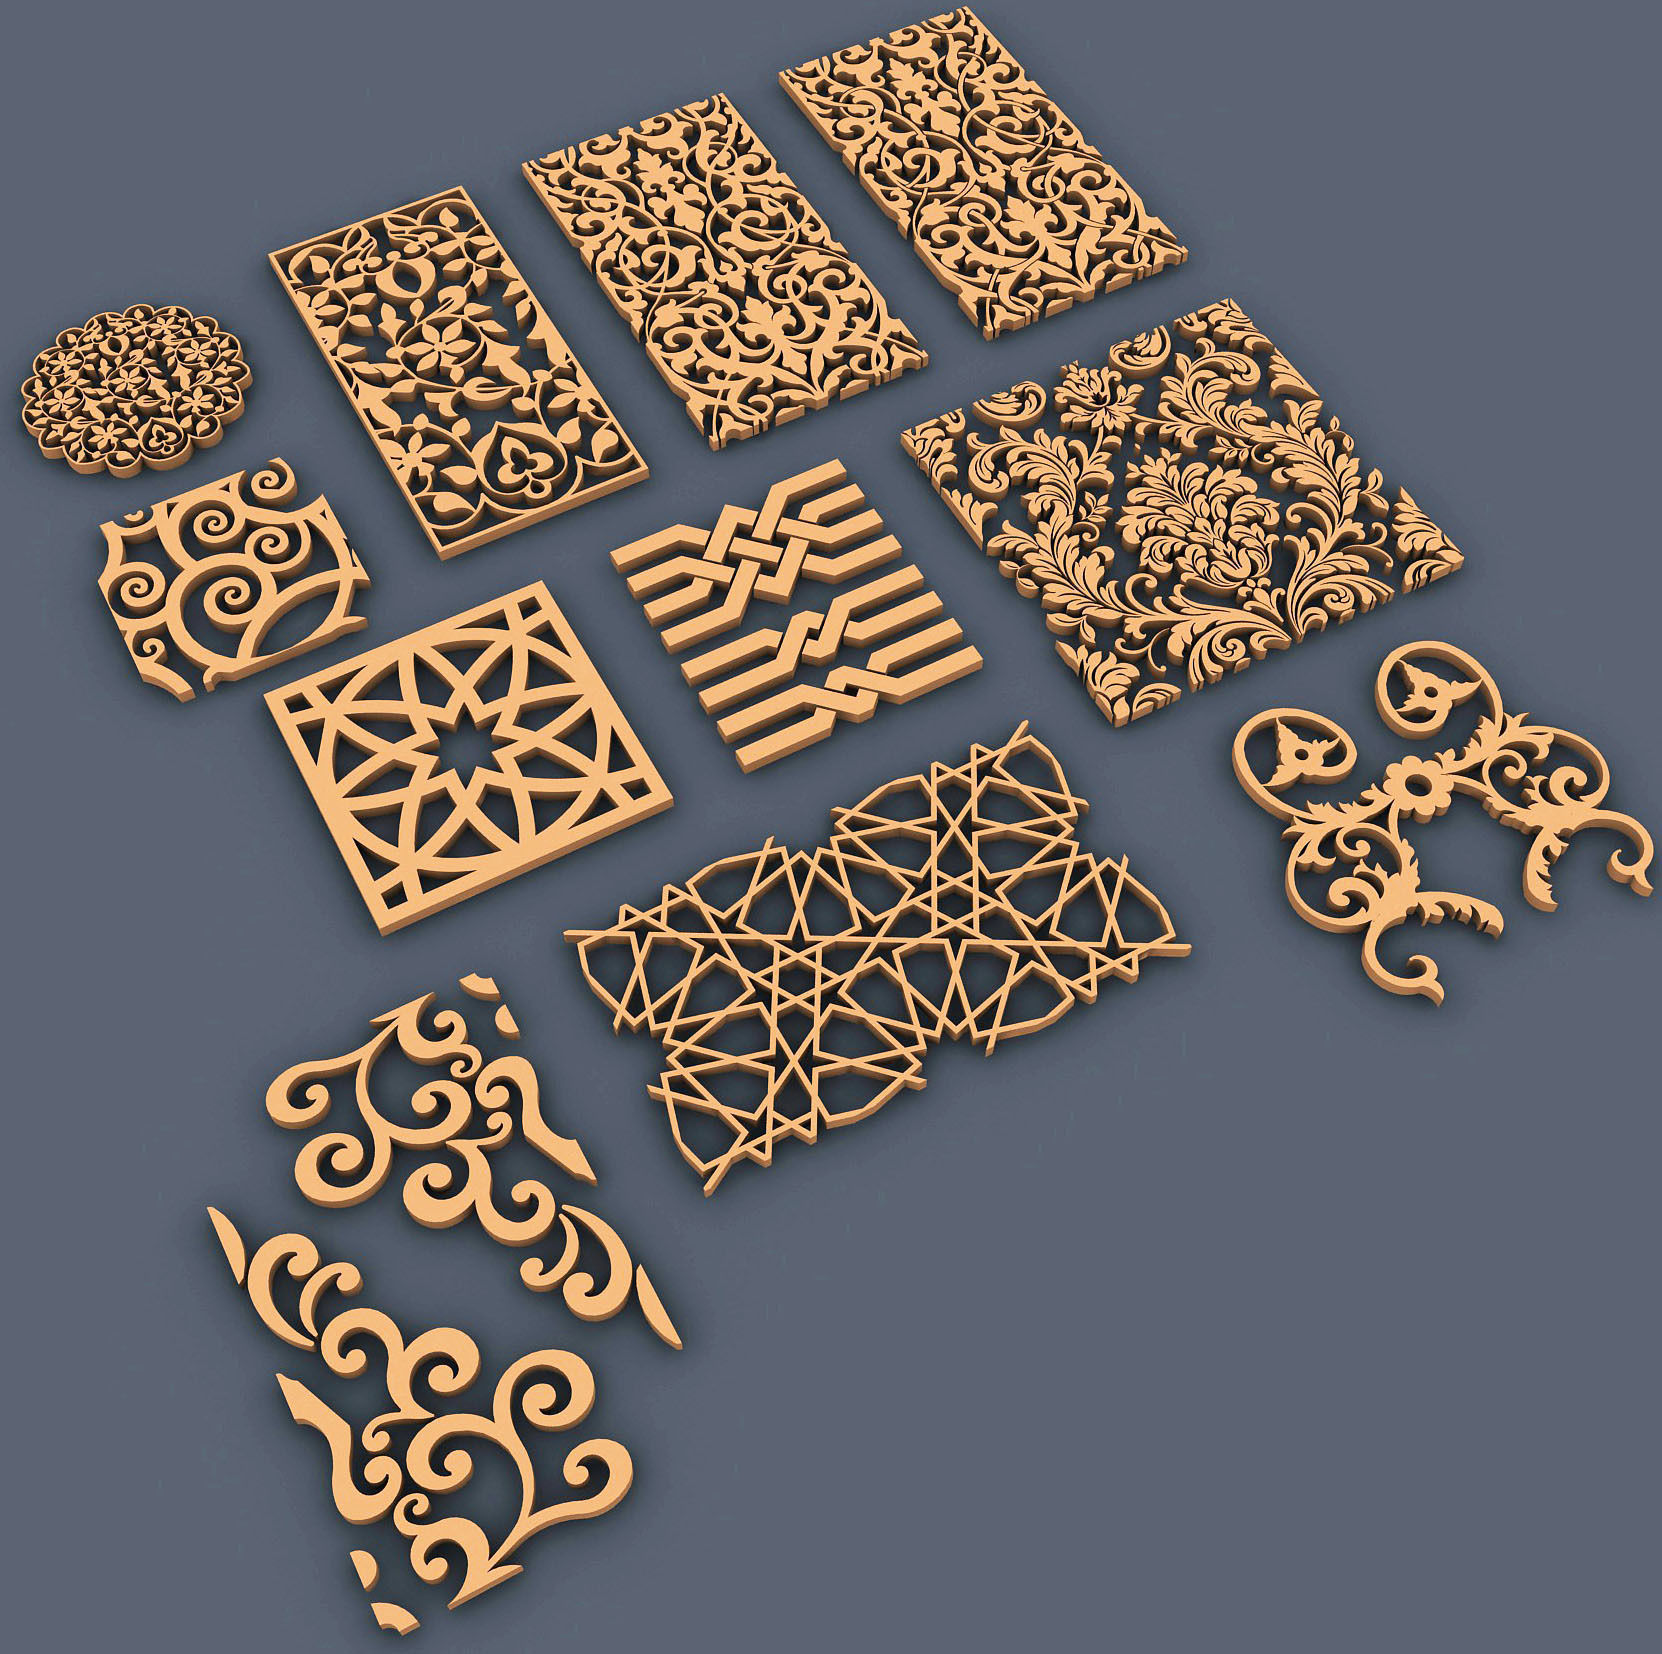 Ornaments 3d model max dwg for 3d model decoration